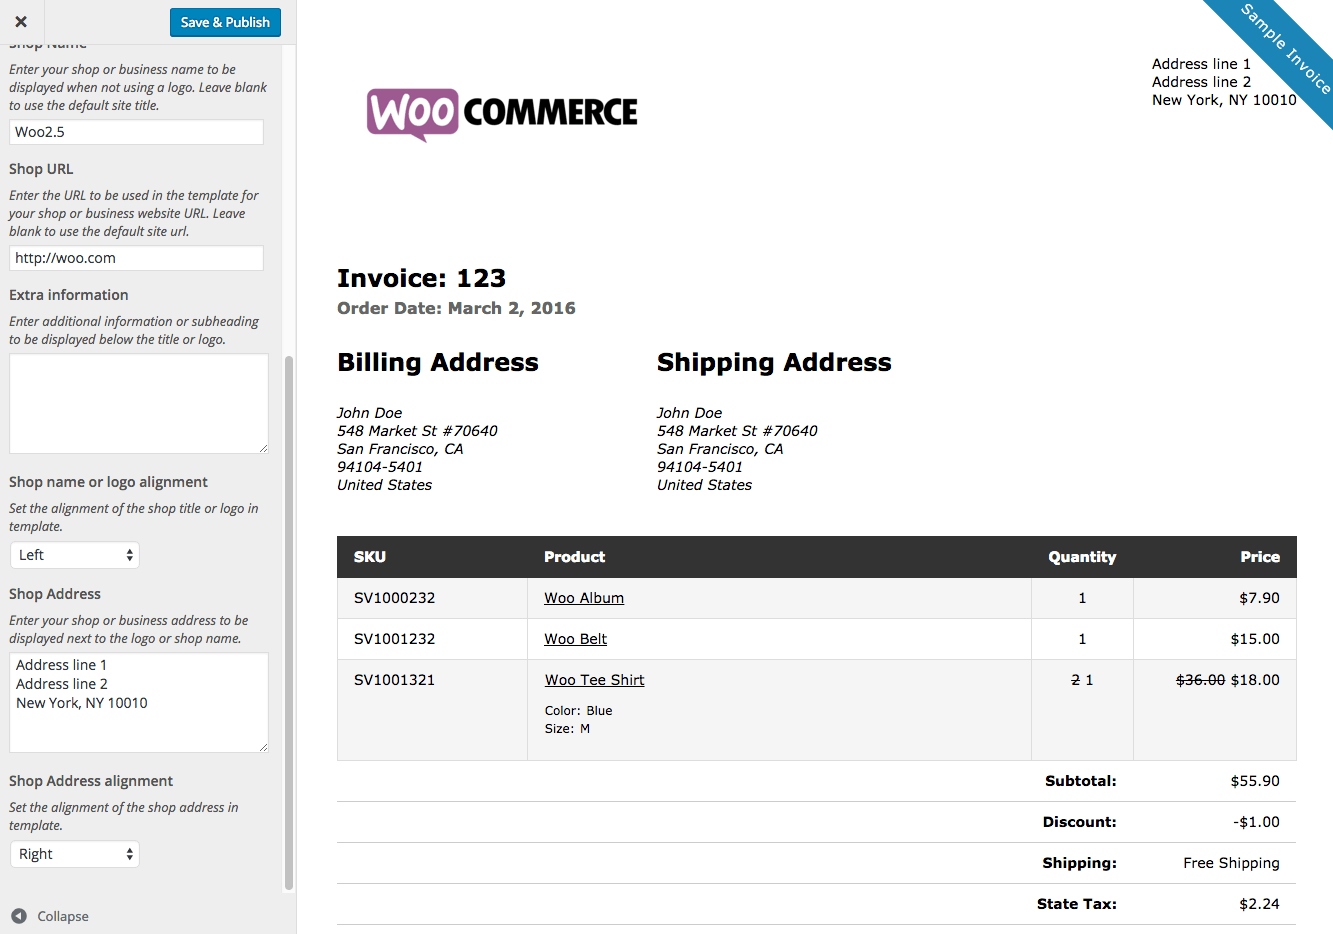 Weverducreus  Unique Print Invoices Amp Packing Lists  Woocommerce With Licious Woocommerce Print Invoices  Packing Lists Customizer With Archaic Commercial Invoice Template Canada Also Invoicing Means In Addition Best Online Invoice Software And Invoice Clerk Duties As Well As Excel Invoice Database Additionally How To Get Invoice Price Of Car From Woocommercecom With Weverducreus  Licious Print Invoices Amp Packing Lists  Woocommerce With Archaic Woocommerce Print Invoices  Packing Lists Customizer And Unique Commercial Invoice Template Canada Also Invoicing Means In Addition Best Online Invoice Software From Woocommercecom